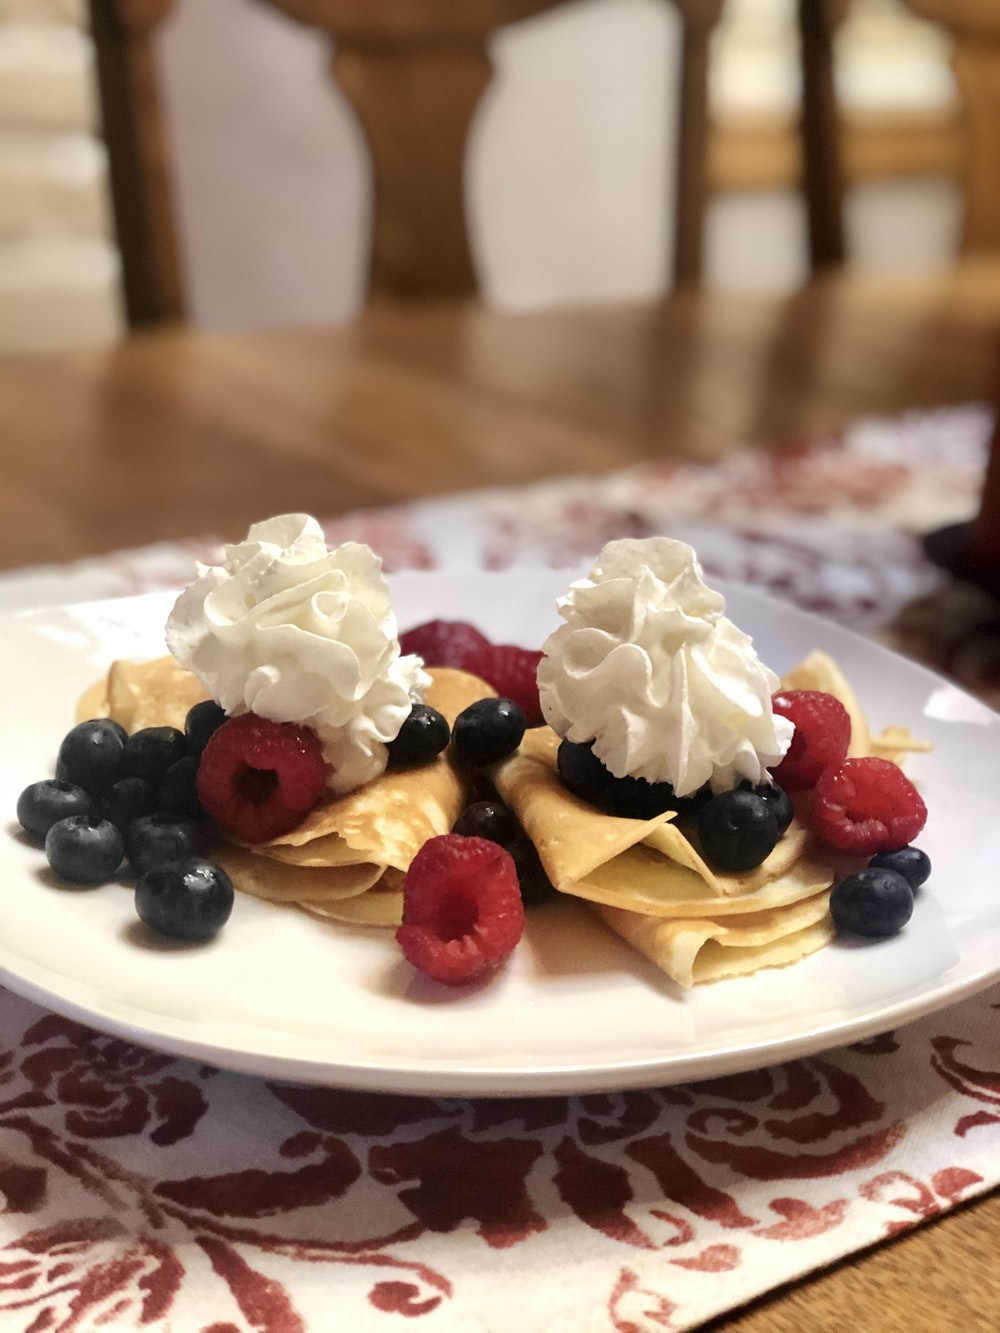 white and red ceramic plate with white cream and black berries